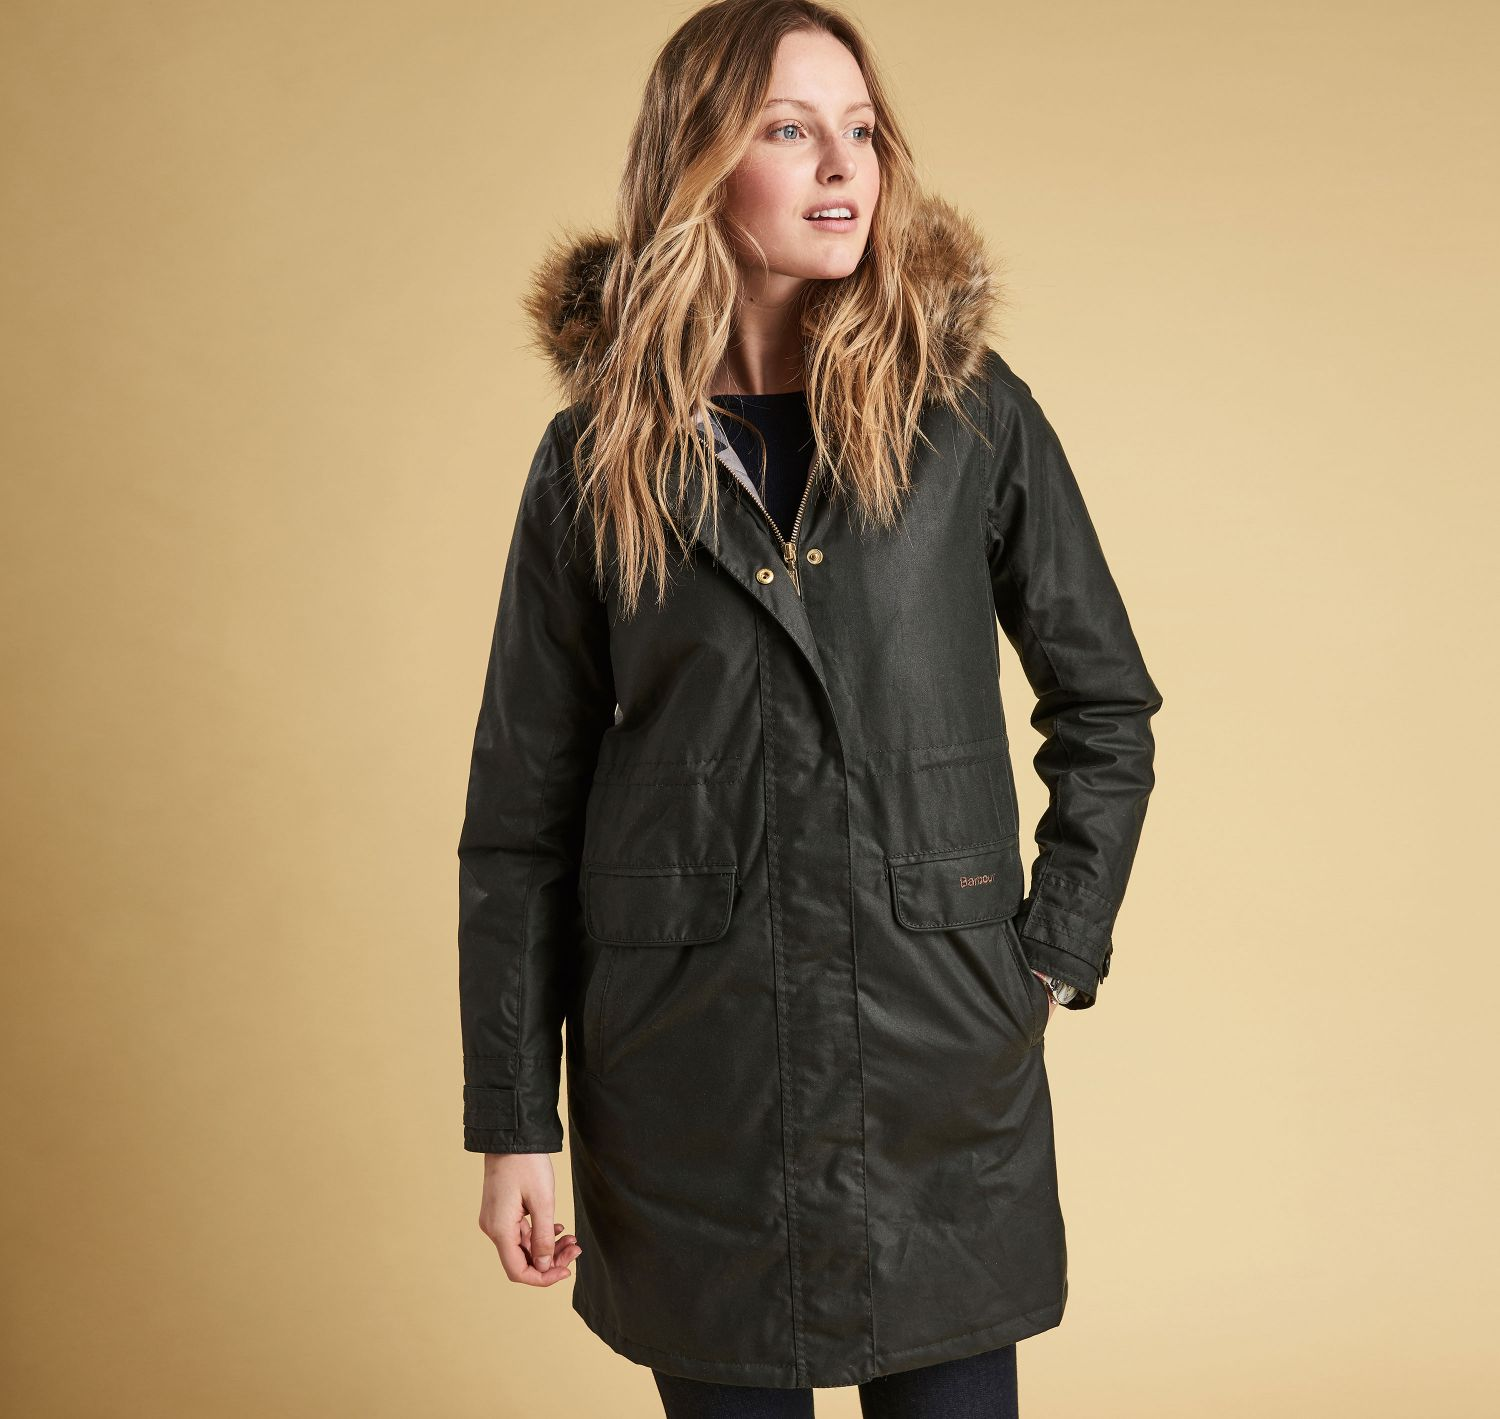 Barbour Galloway Waxed Cotton Jacket